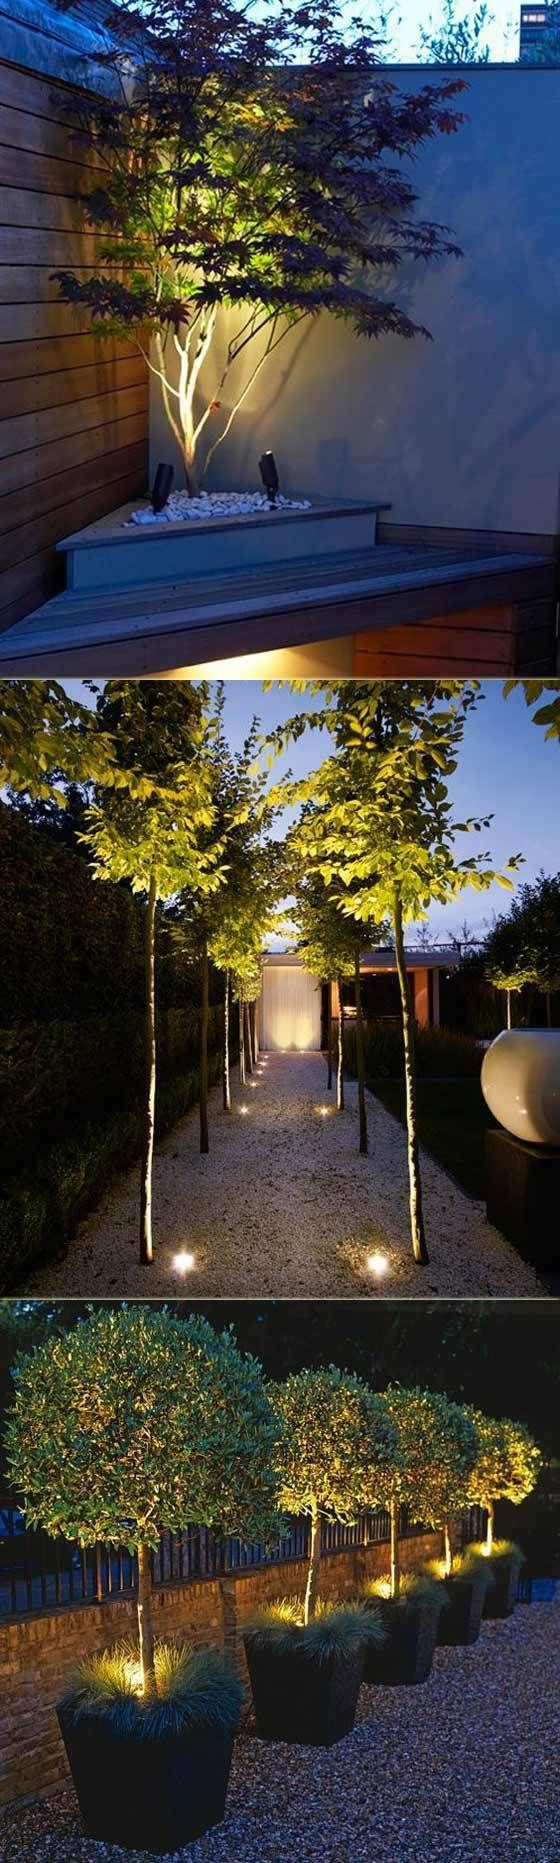 25+ Awesome Backyard Lighting Ideas for Your Home 2019 #landscapelightingdesign